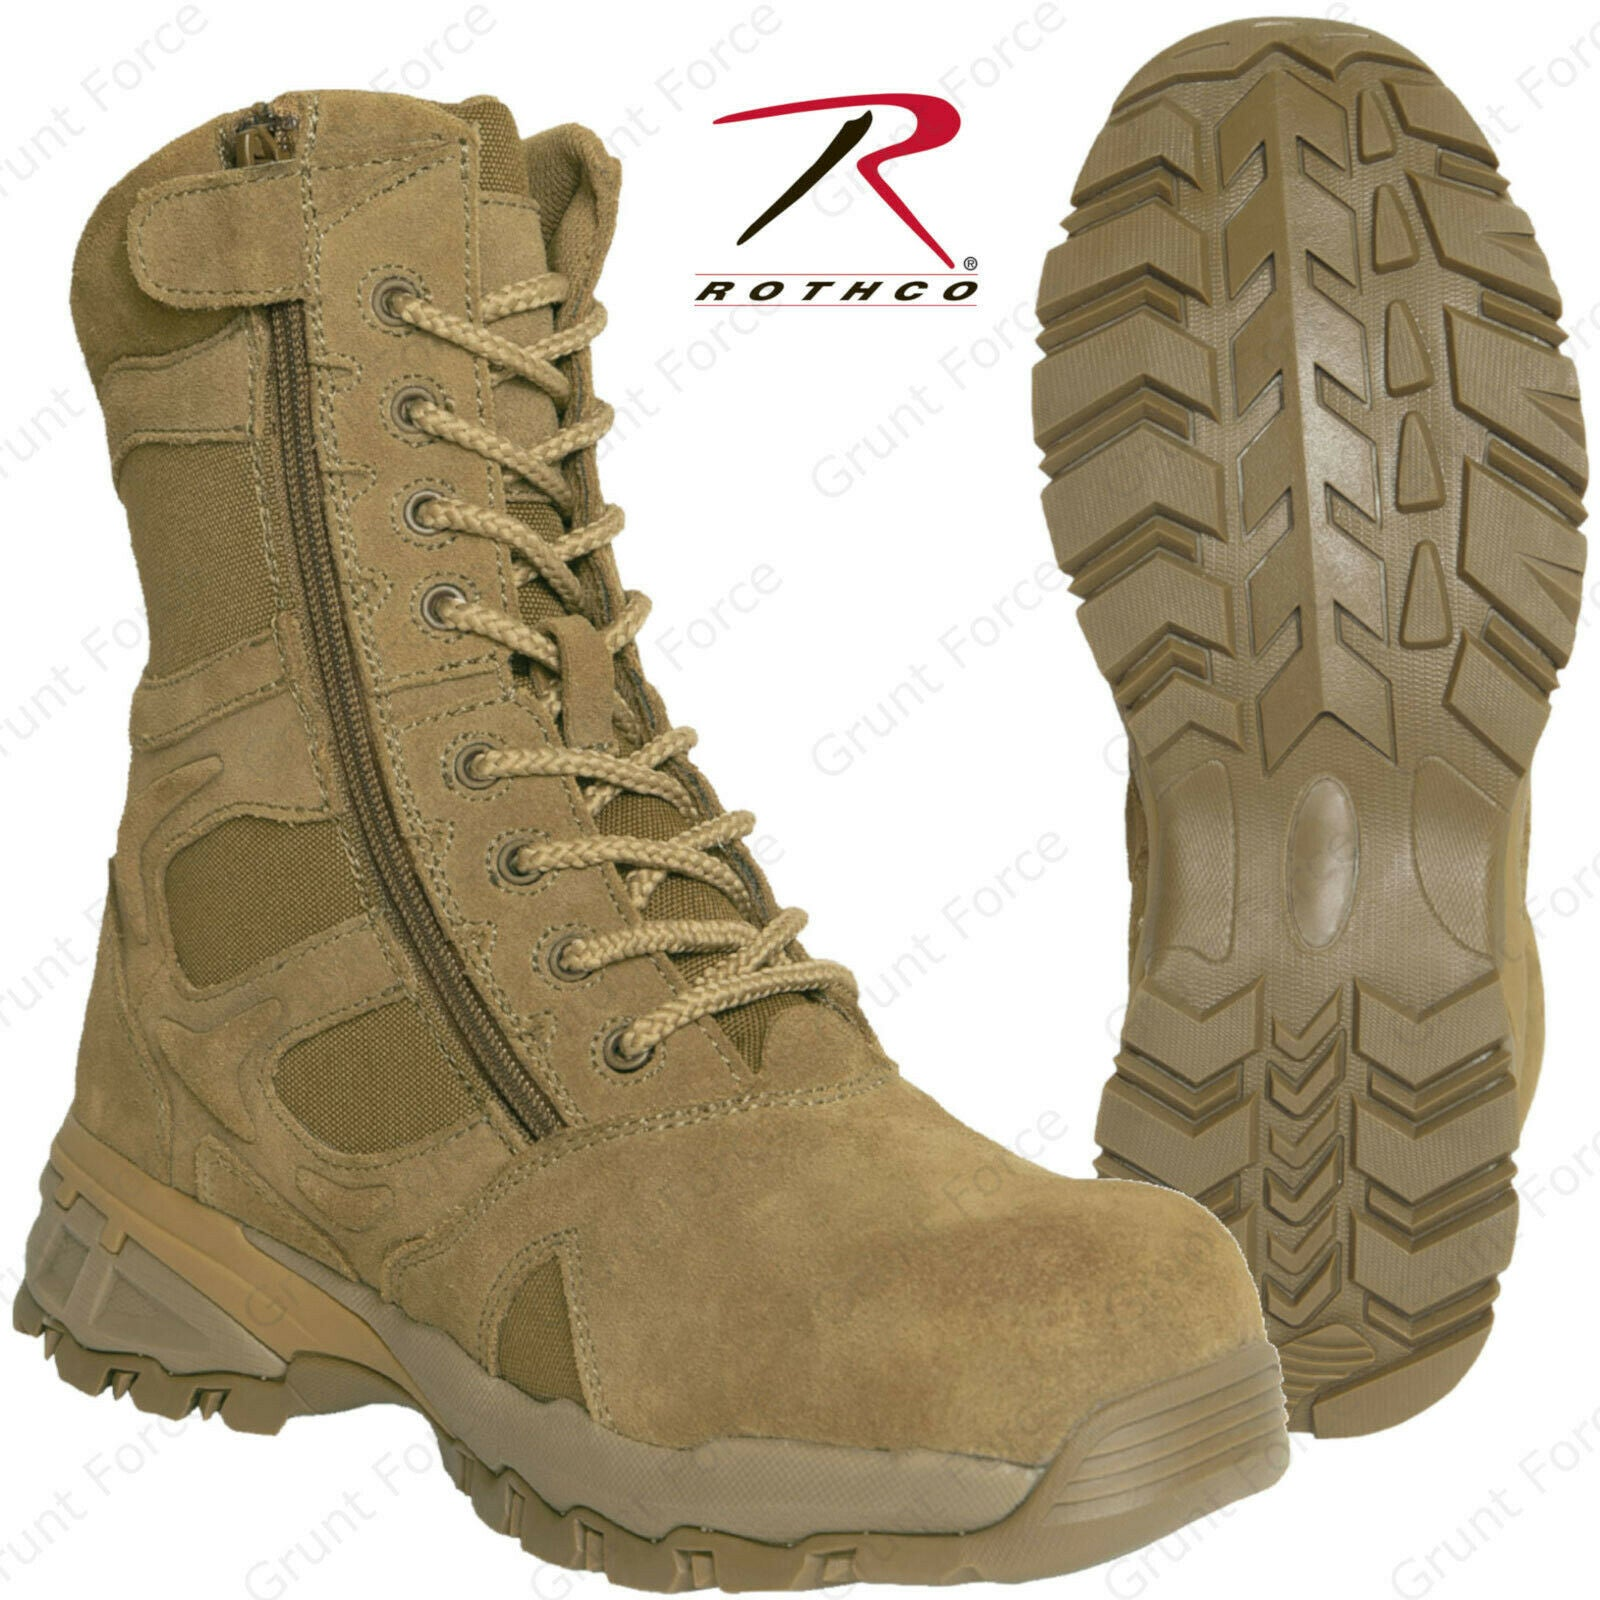 df0bf9003dd AR 670-1 Coyote 8 Inch Forced Entry Tactical Boot W/ Side Zipper ...